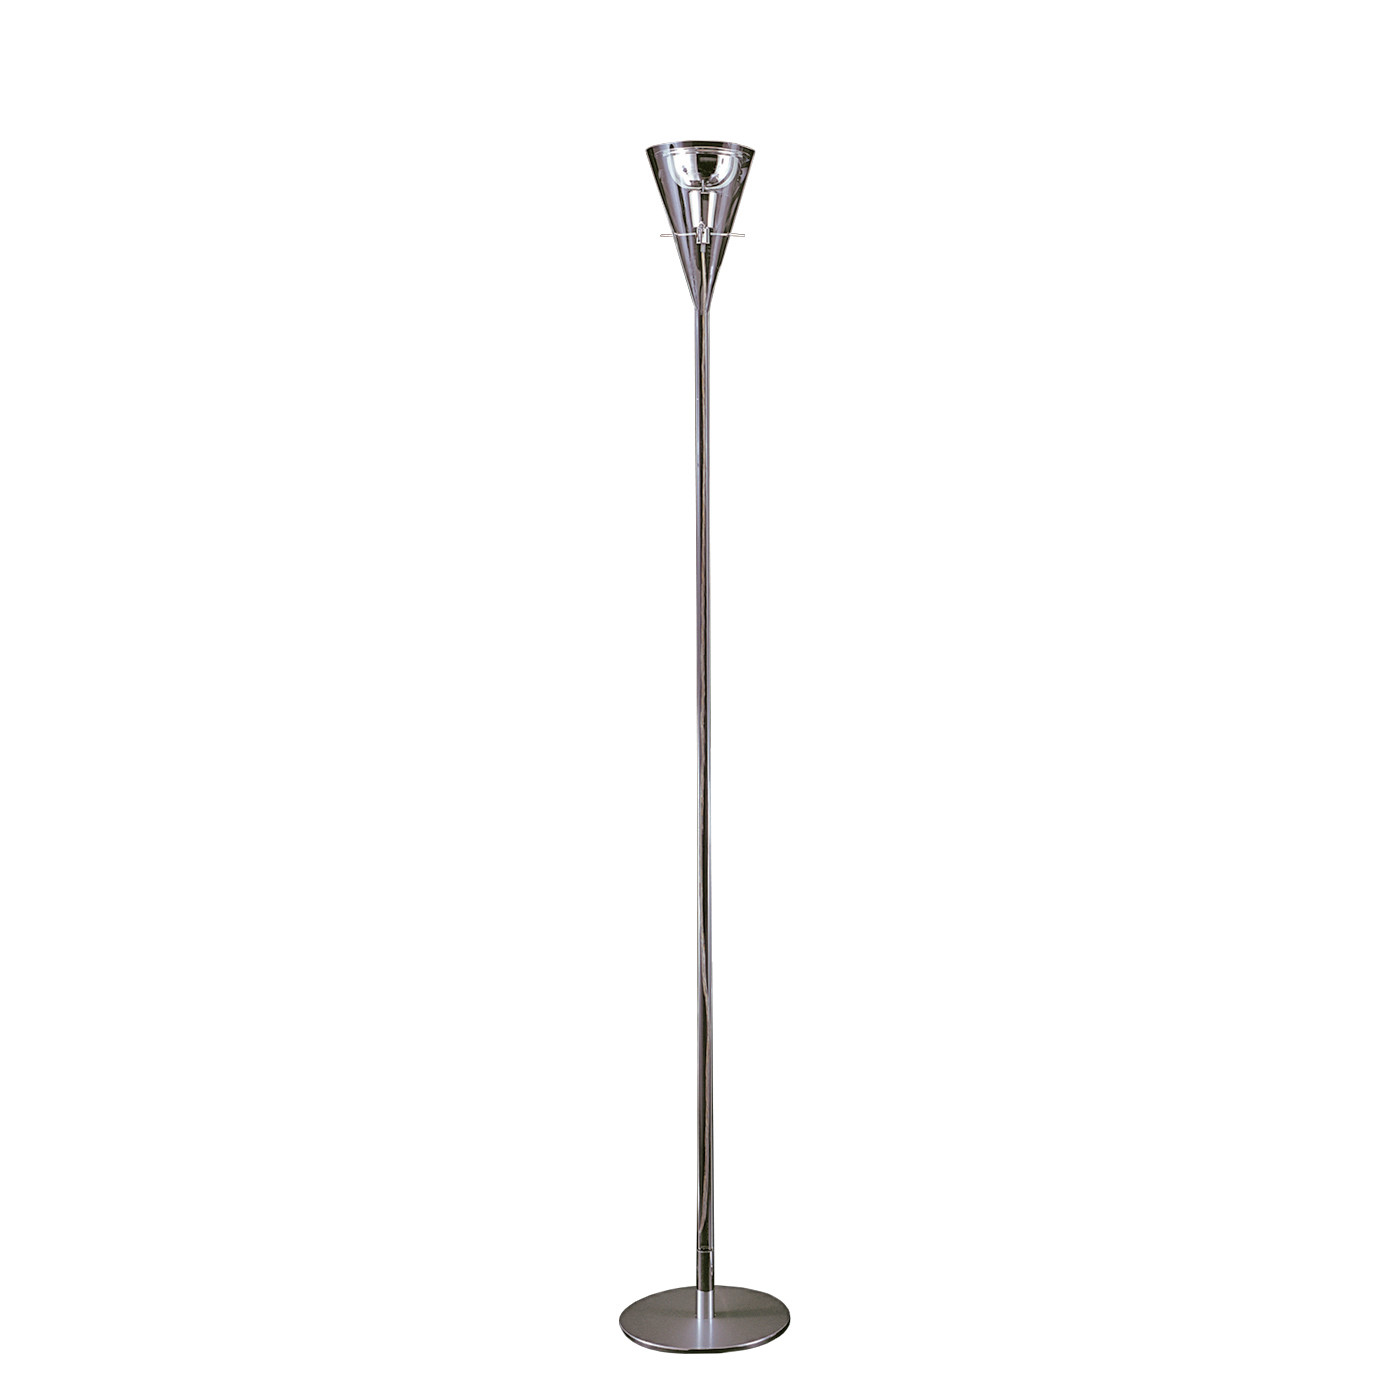 Fontanaarte Flute Floor Lamp At Nostraforma